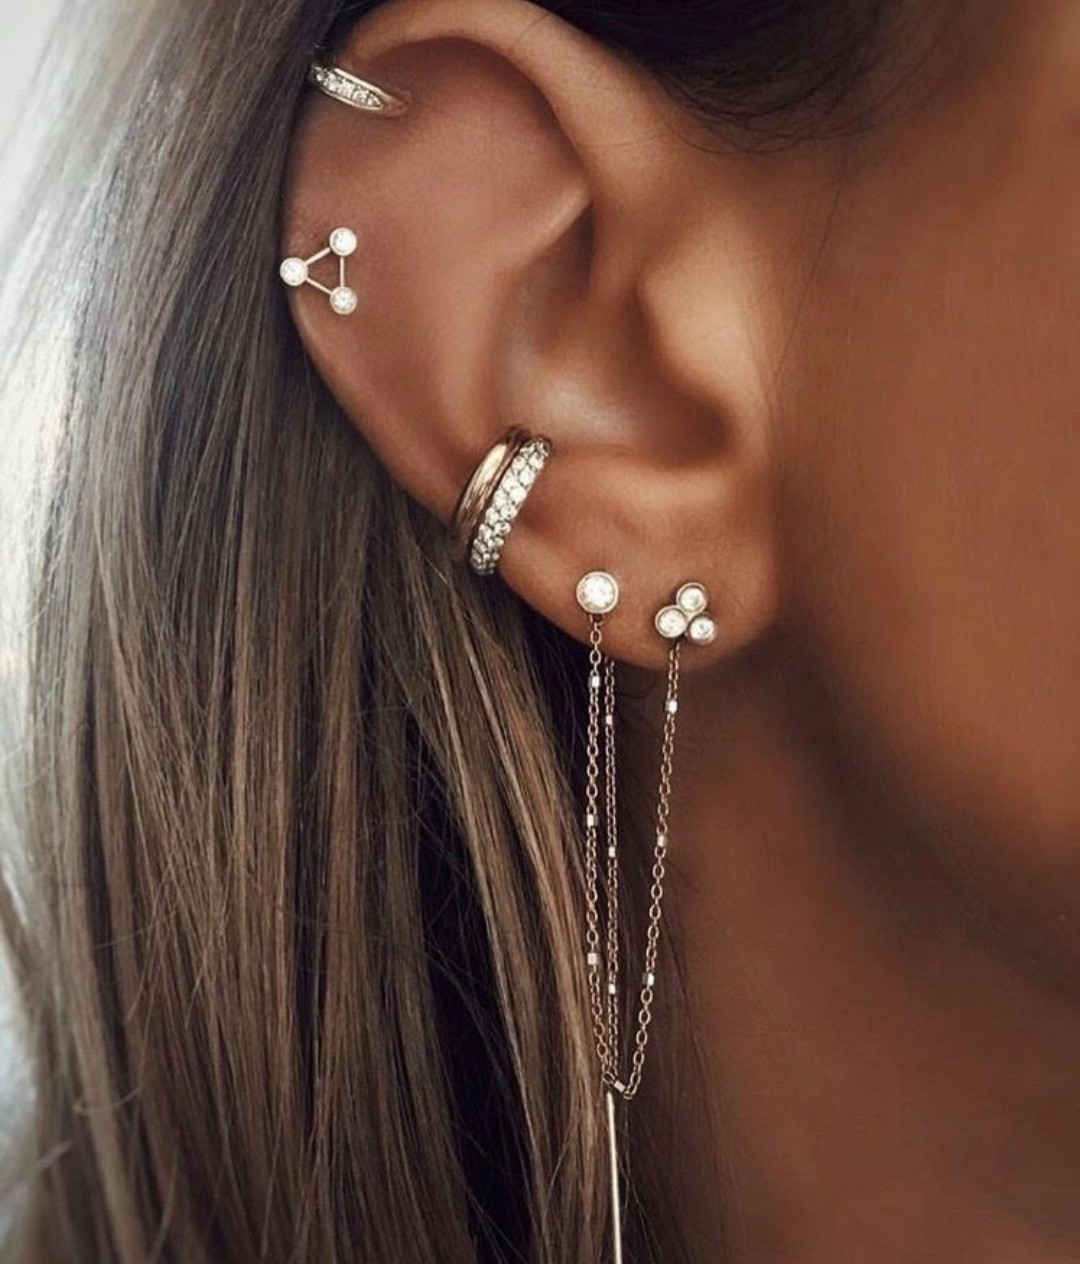 piercing, jewelry, and earrings image